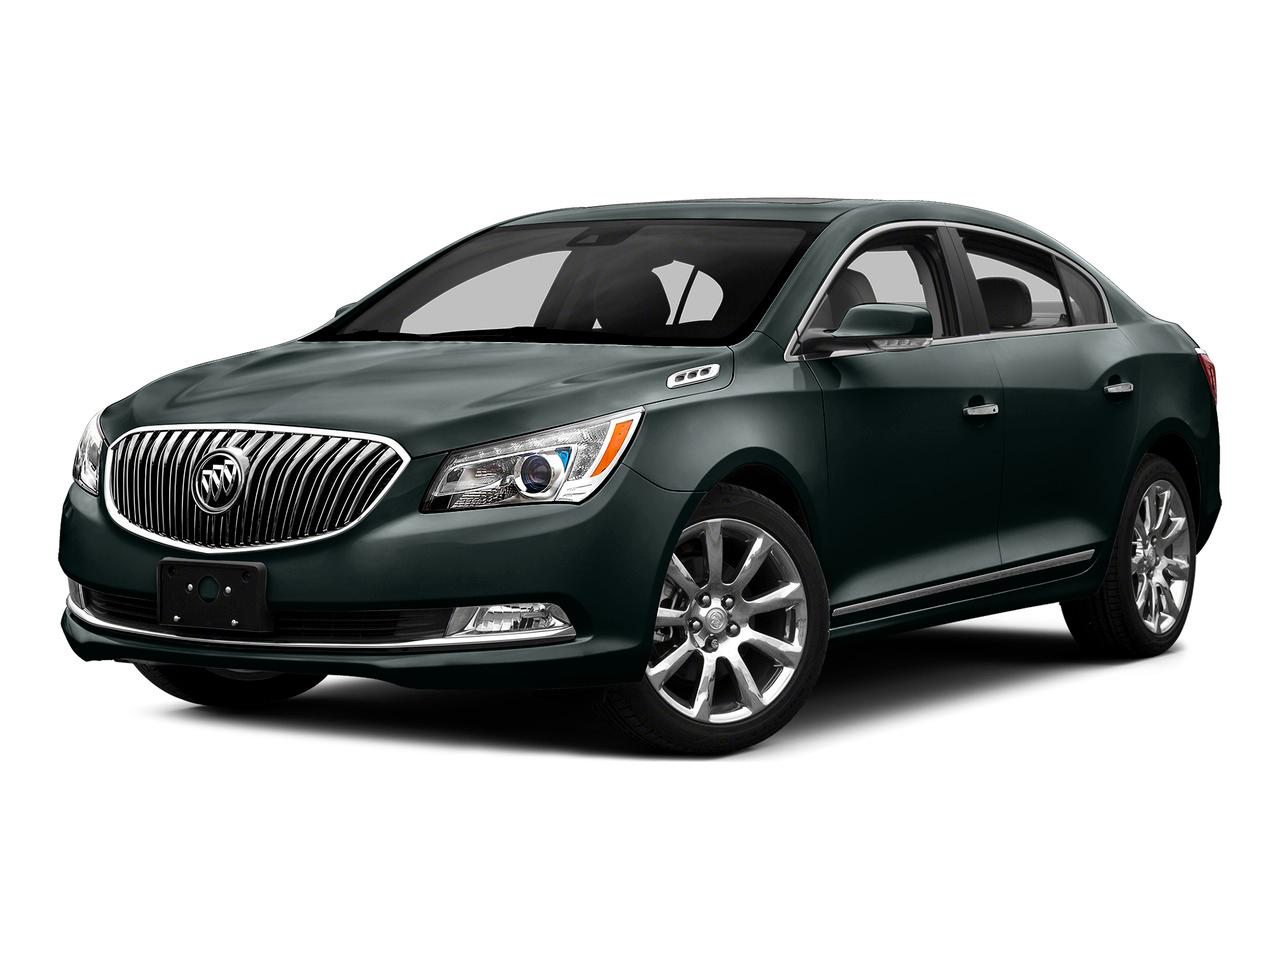 2016 Buick LaCrosse Vehicle Photo in West Chester, PA 19382